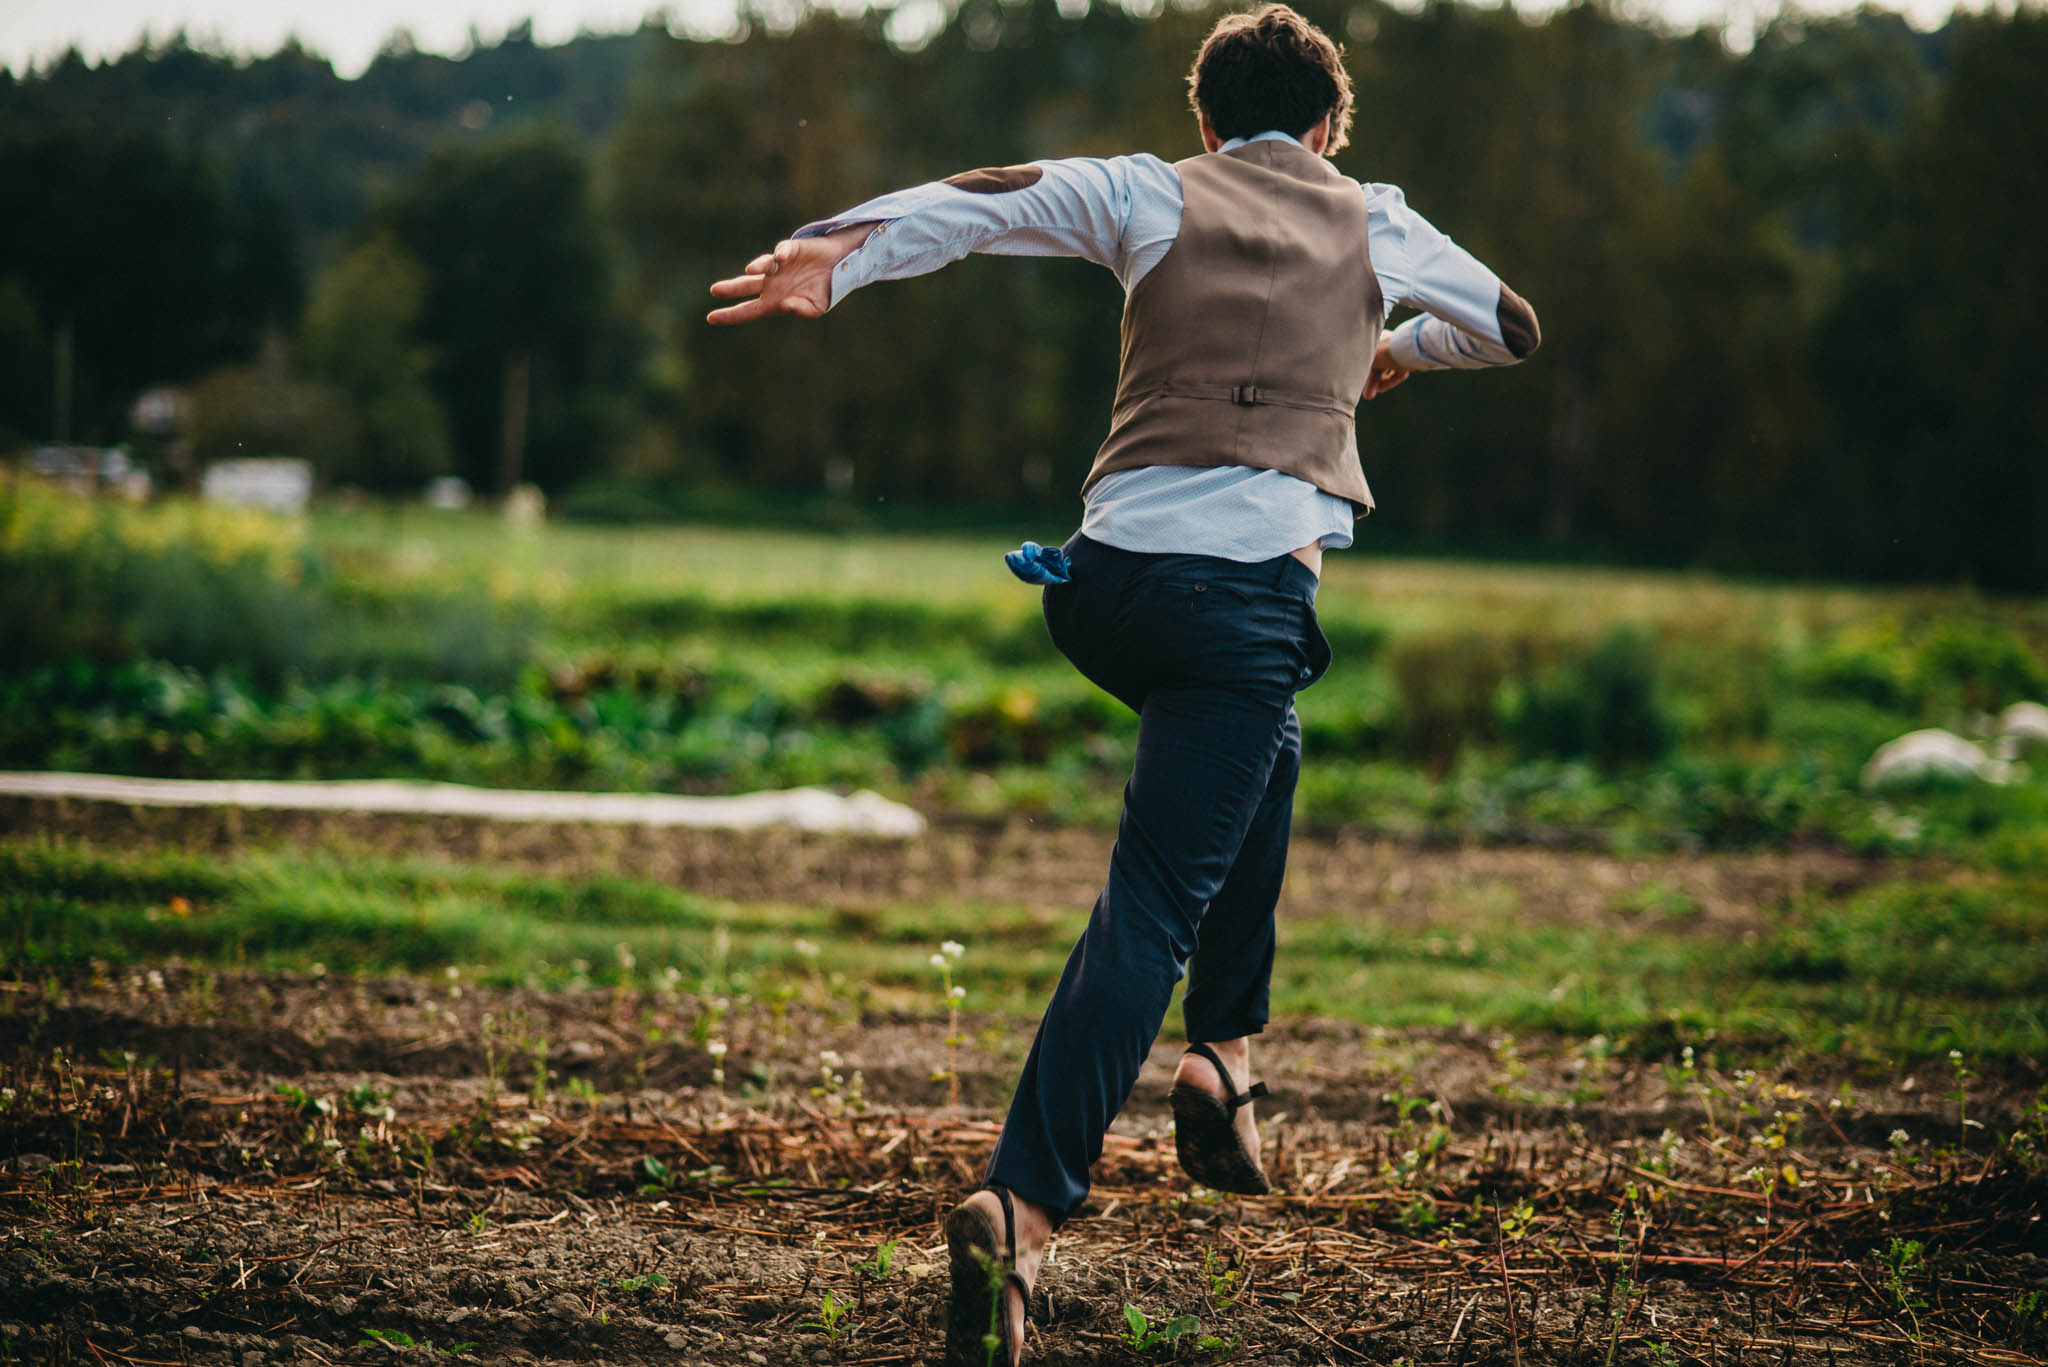 groom running through farm field